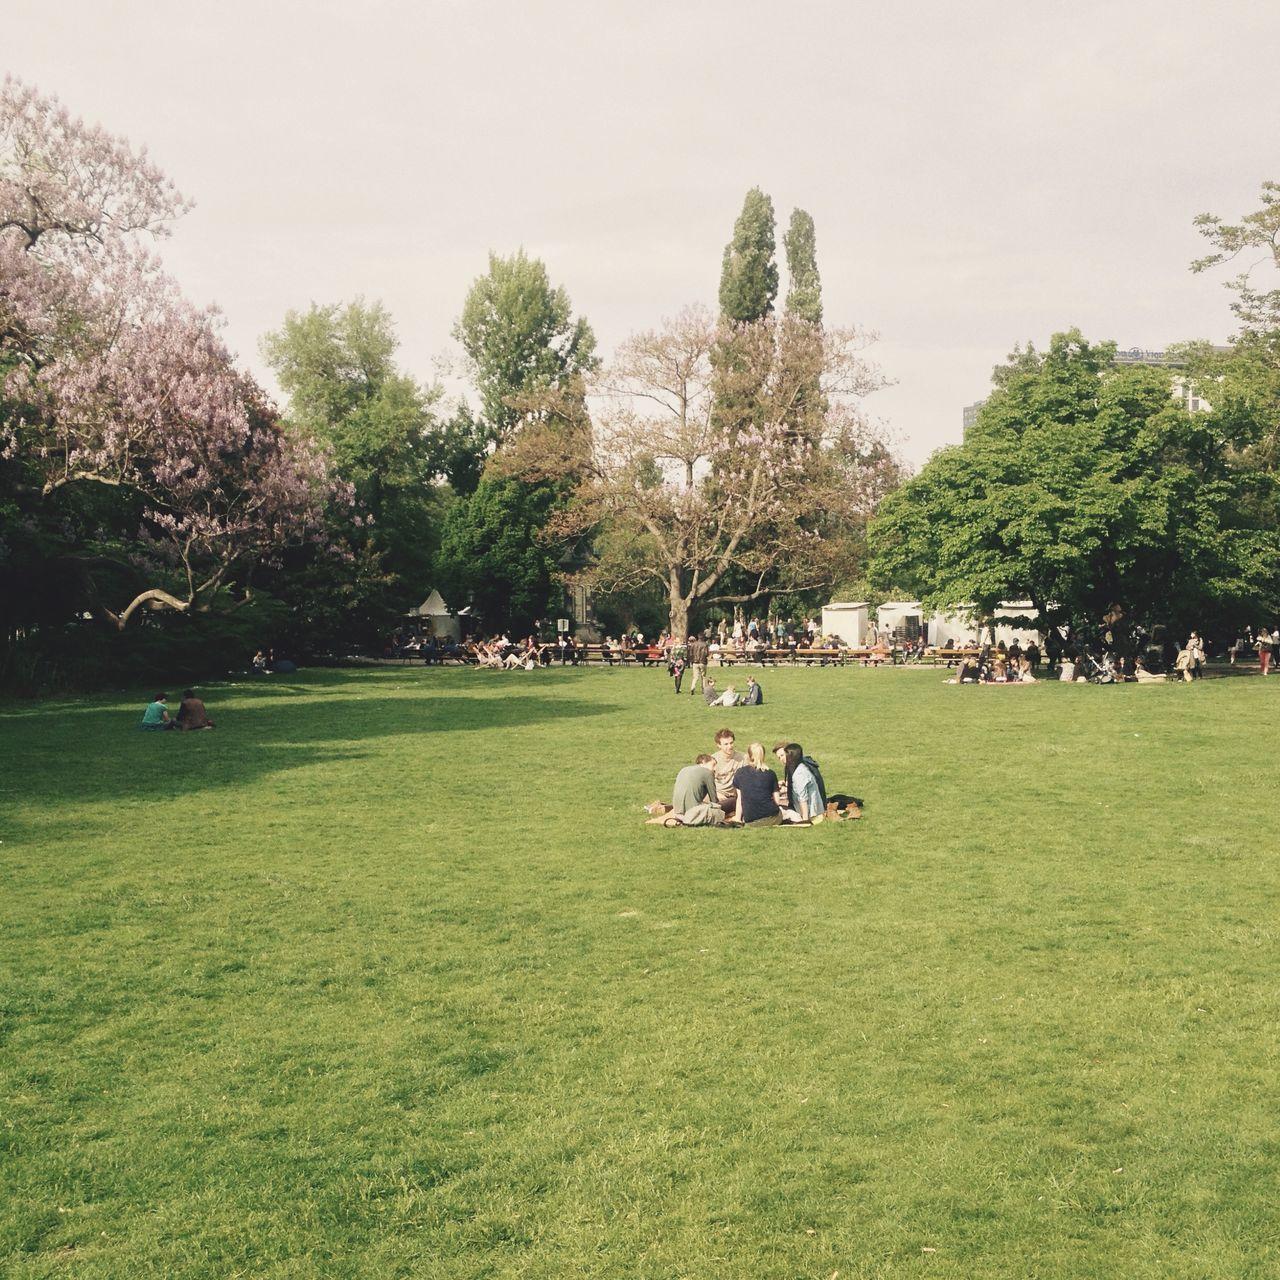 View Of People Sitting In Park